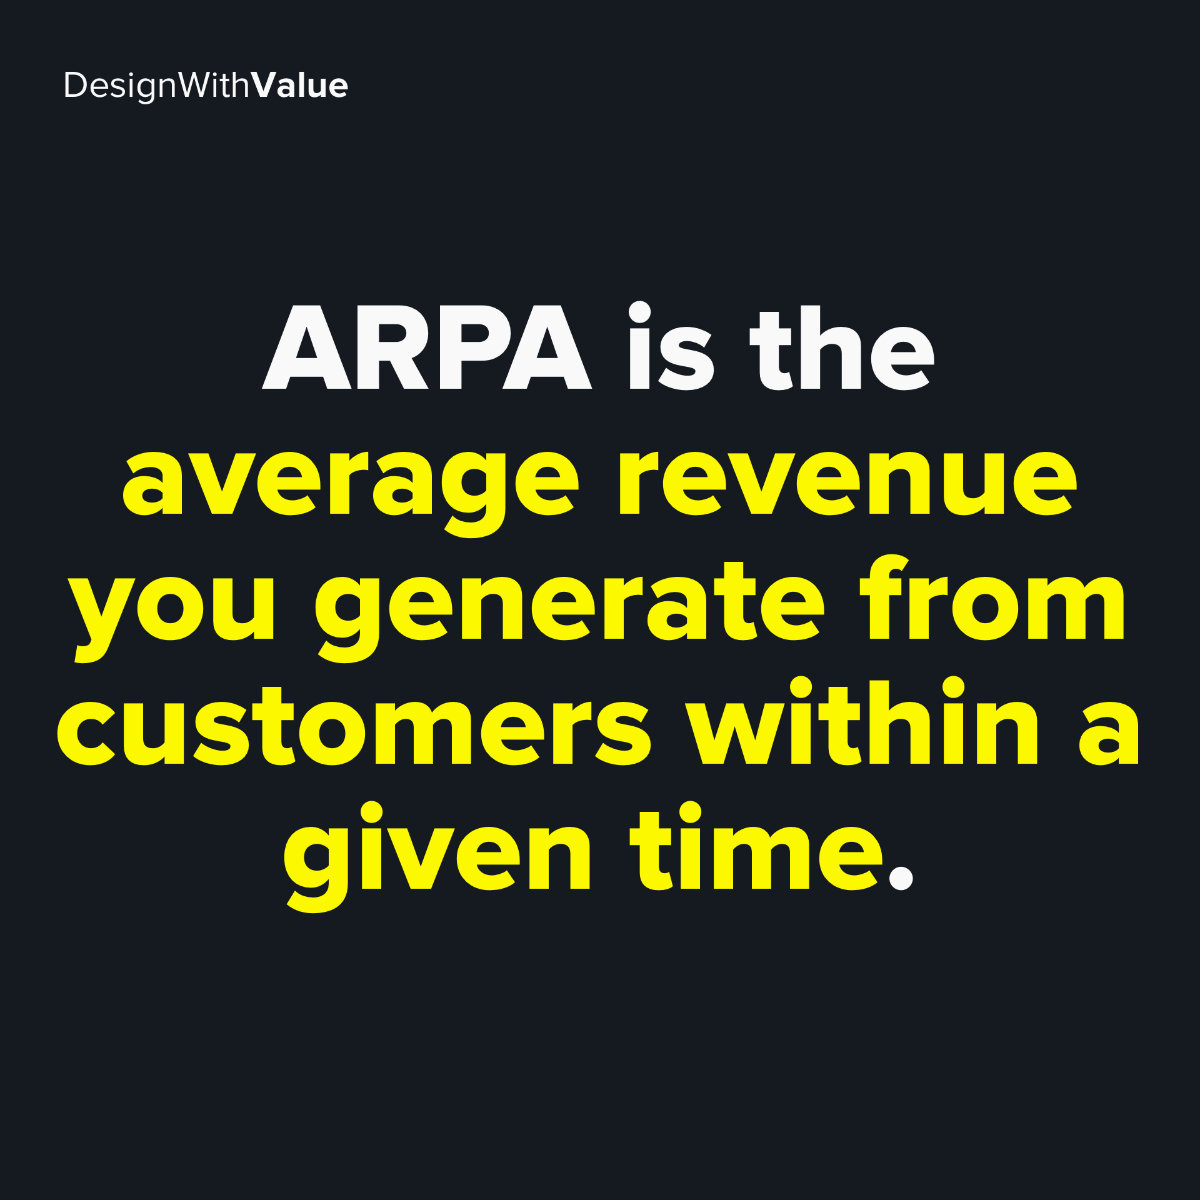 ARPA is the average revenue you generate from customers within a given time